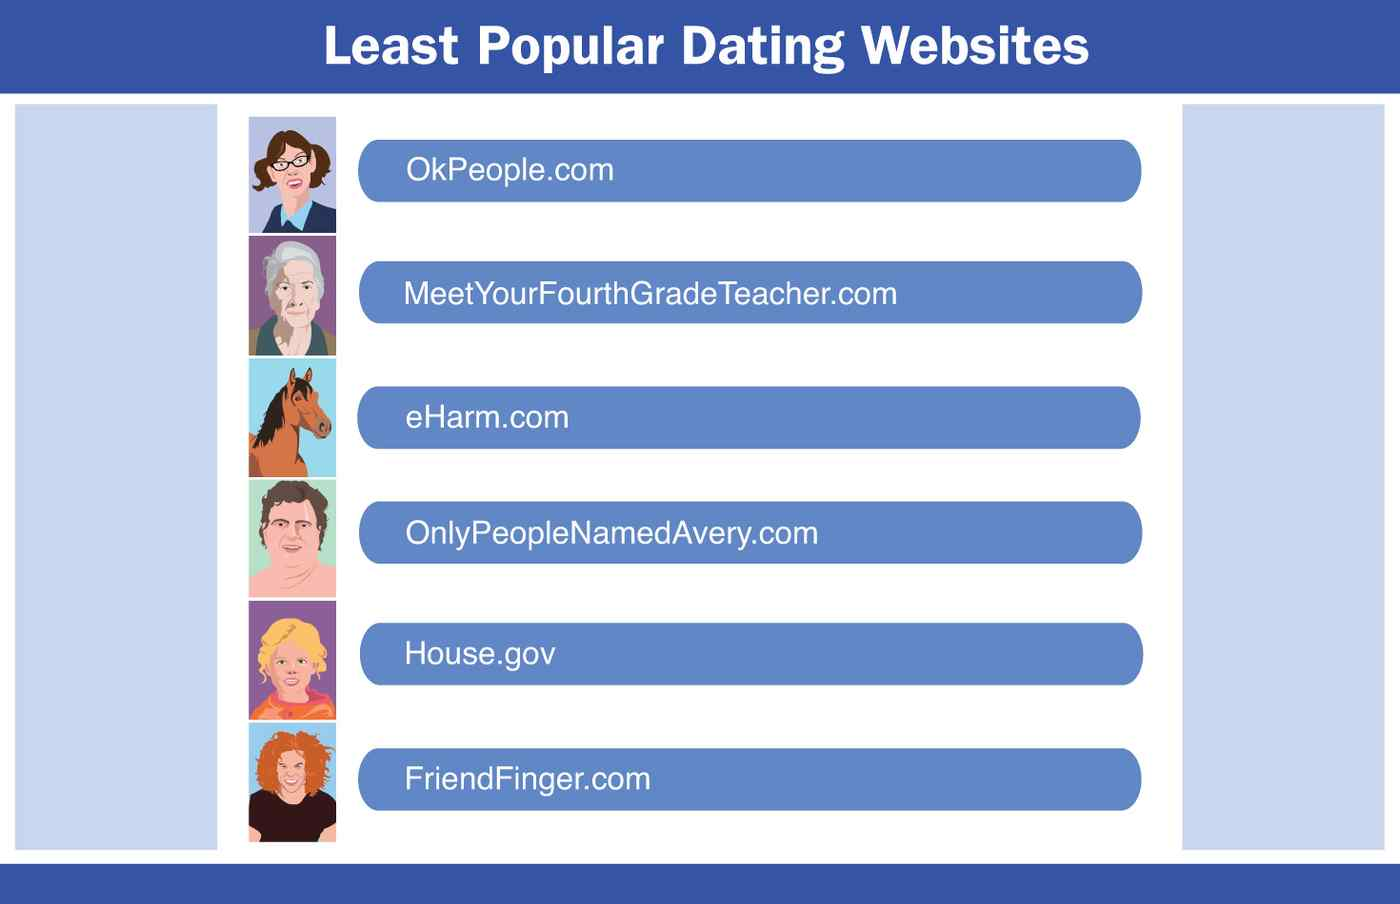 dating sites best At the end of november 2004, there were 844 lifestyle and dating sites, a 38% increase since the start of the year, according to hitwise inc the stigma associated with online dating dropped over the years and people view online dating more positively.